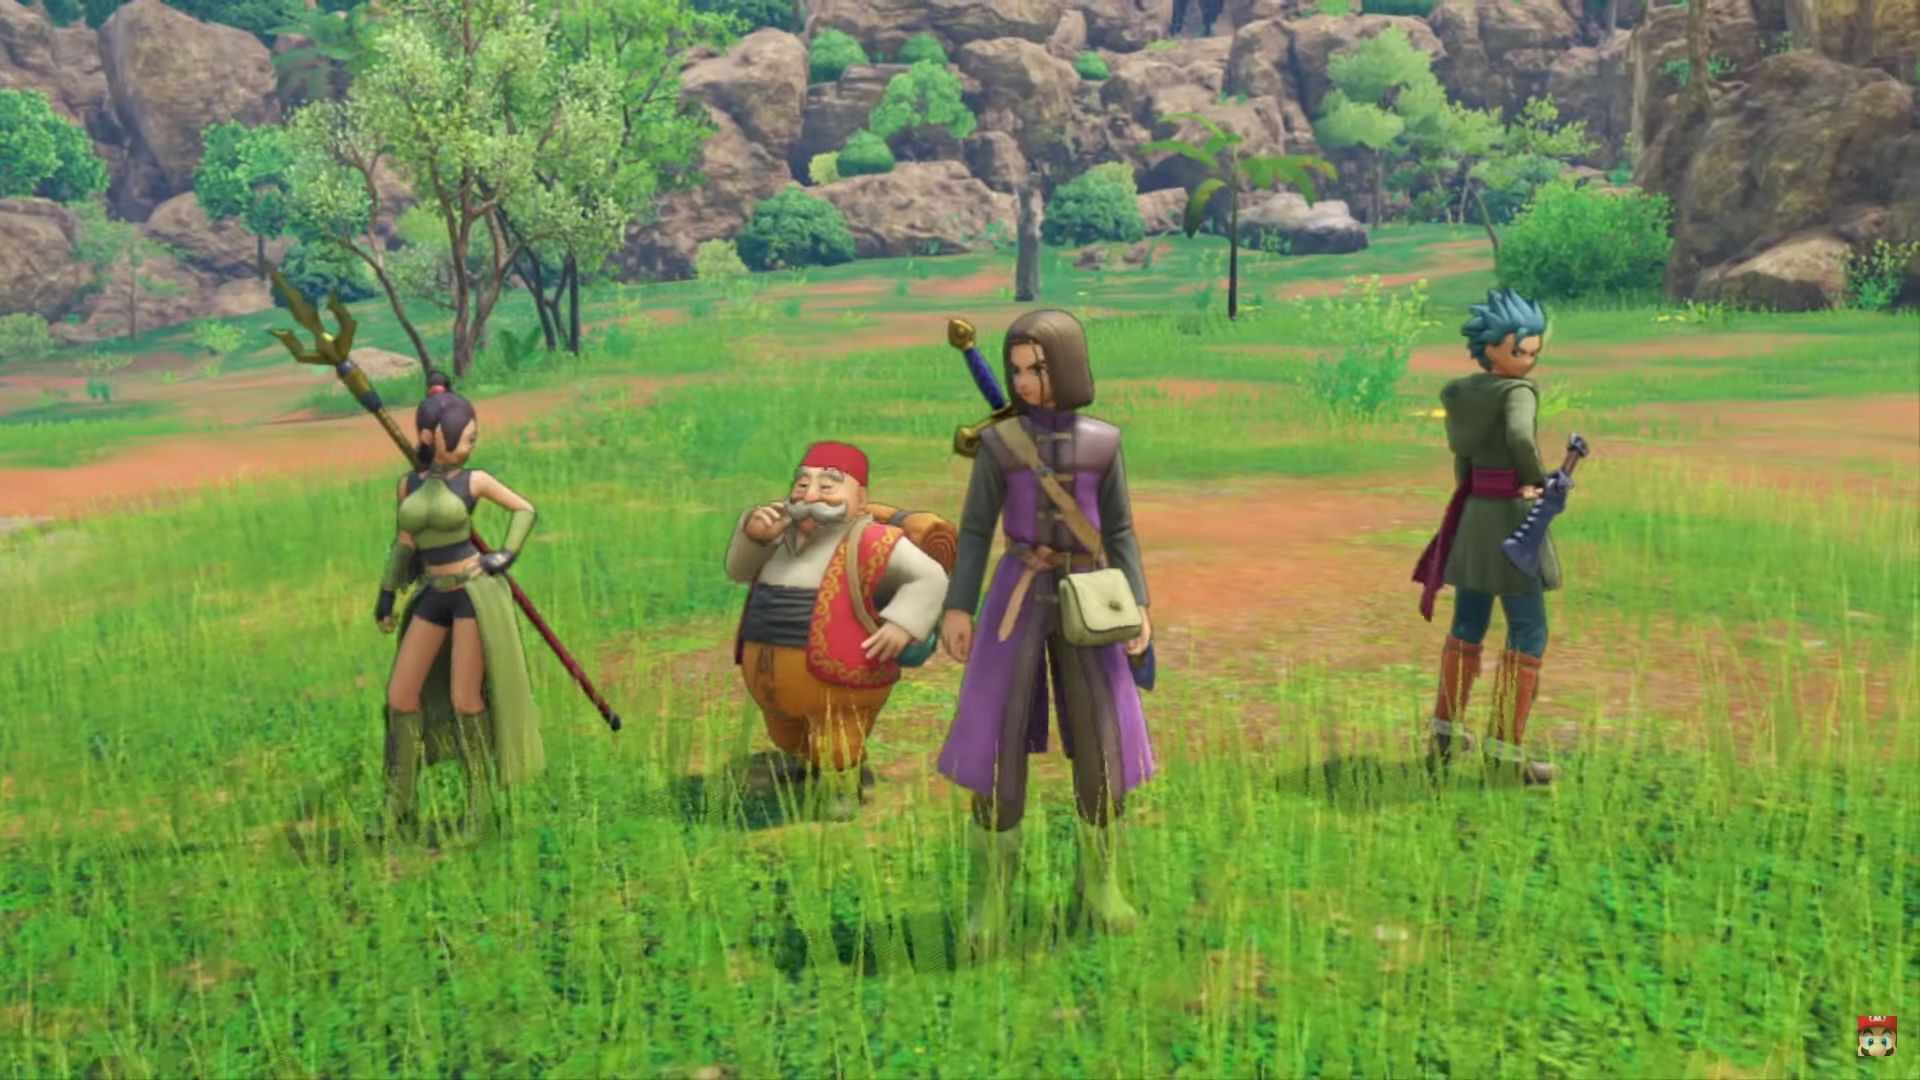 Dragon Quest XI: Echoes of an Elusive Age S – Definitive Edition PC, PS4, X1 Will Be Based on the Nintendo Switch Version